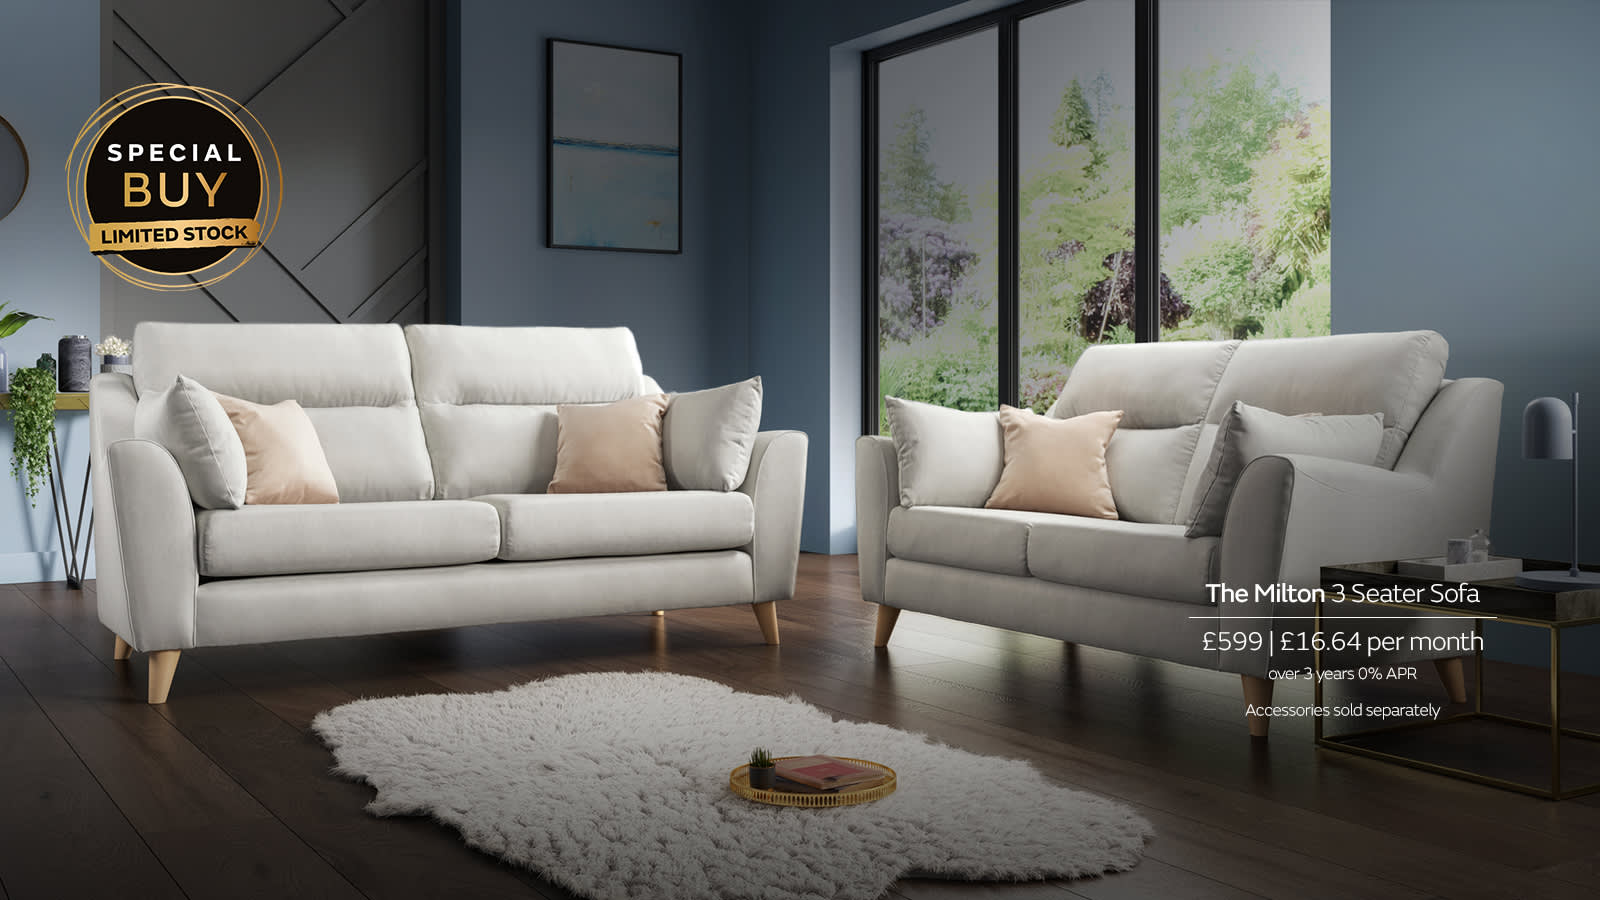 Sofology Special Buy Sofa Milton